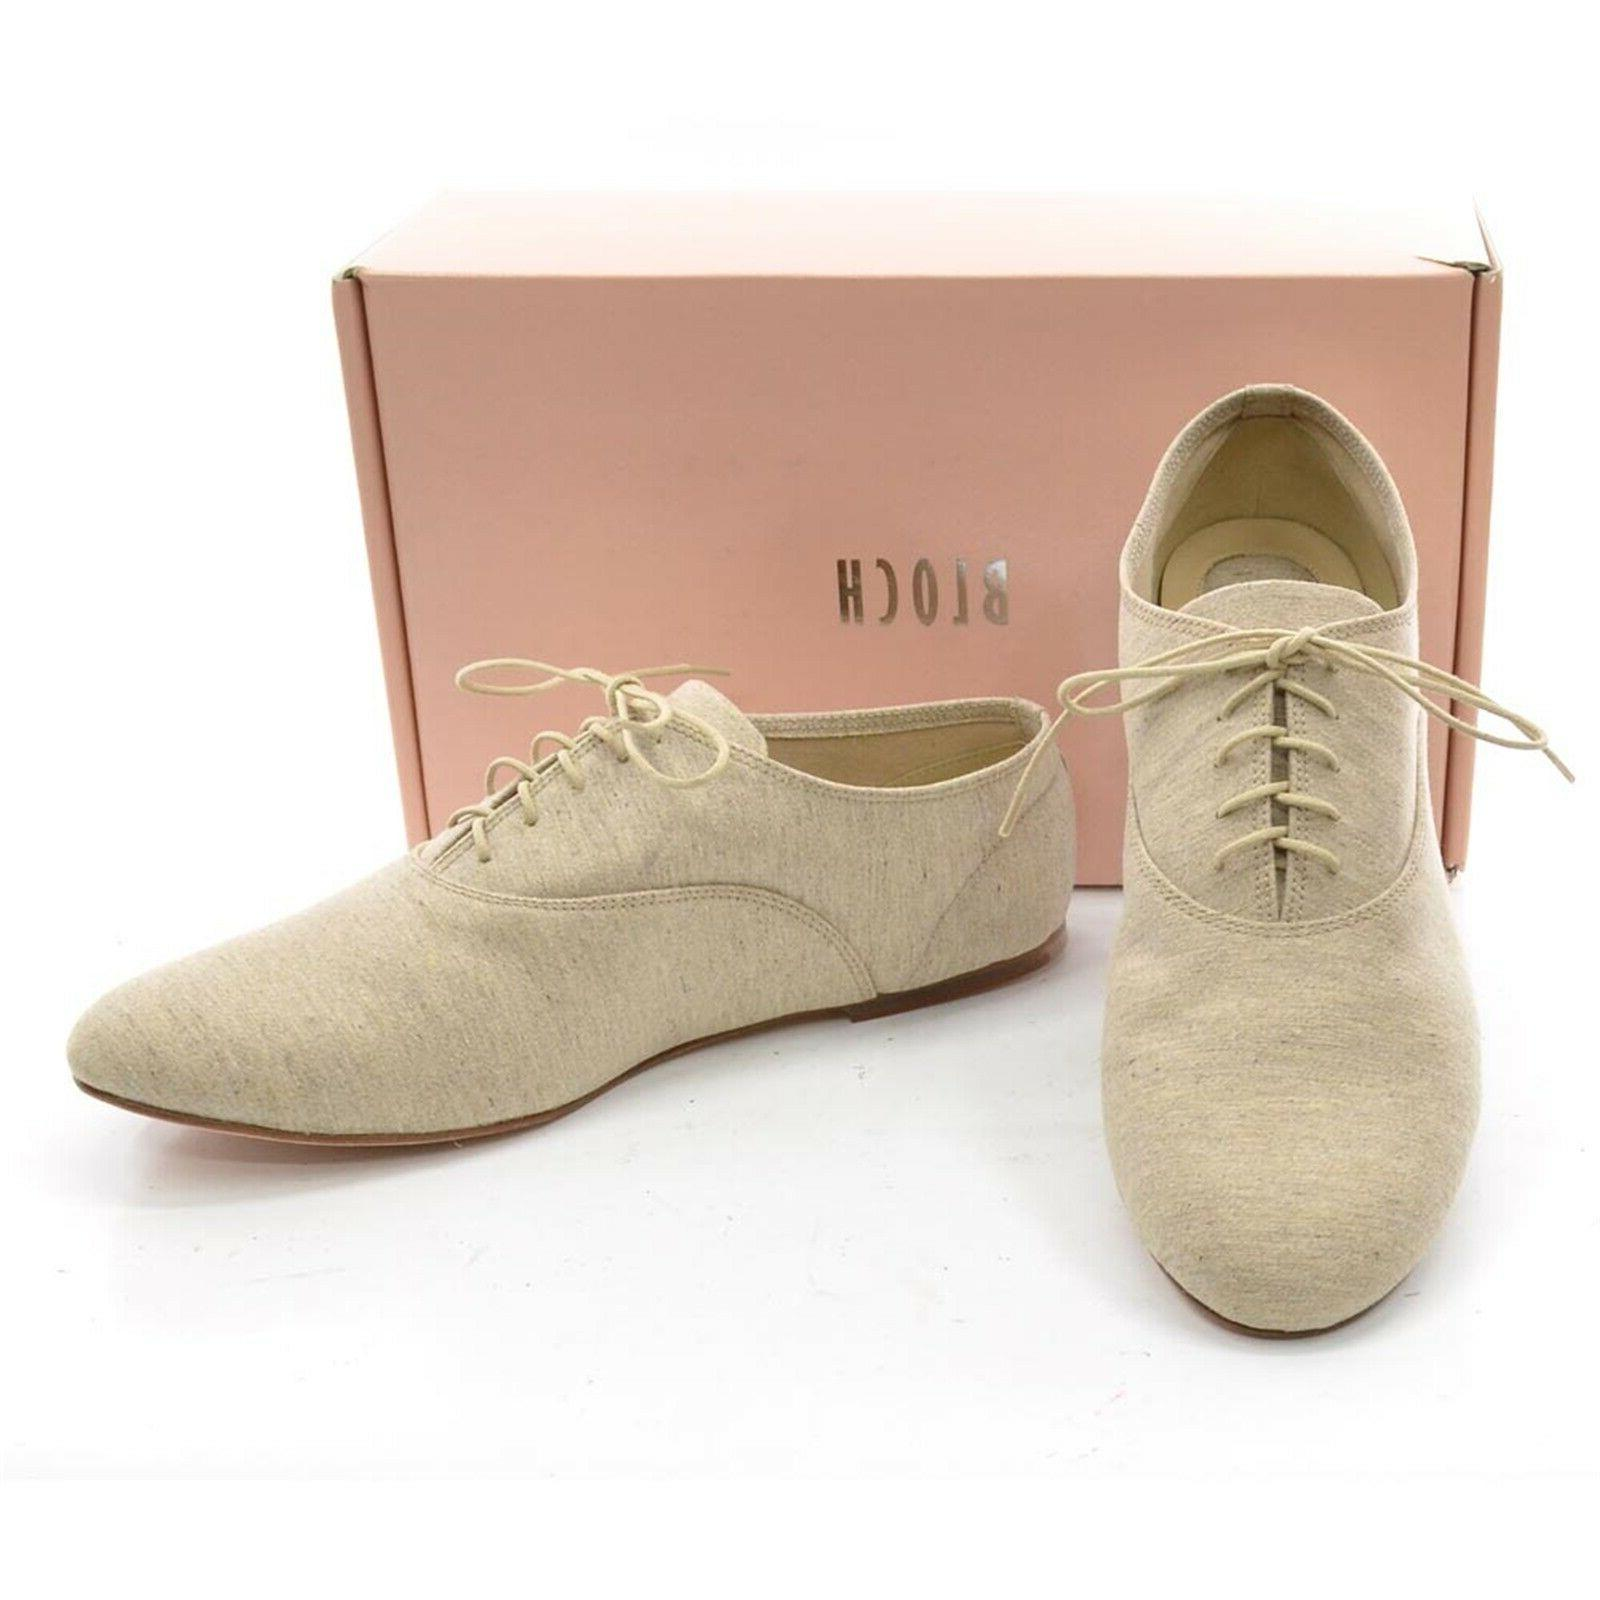 BLOCH OXFORDS 40 / Canvas Shoes in